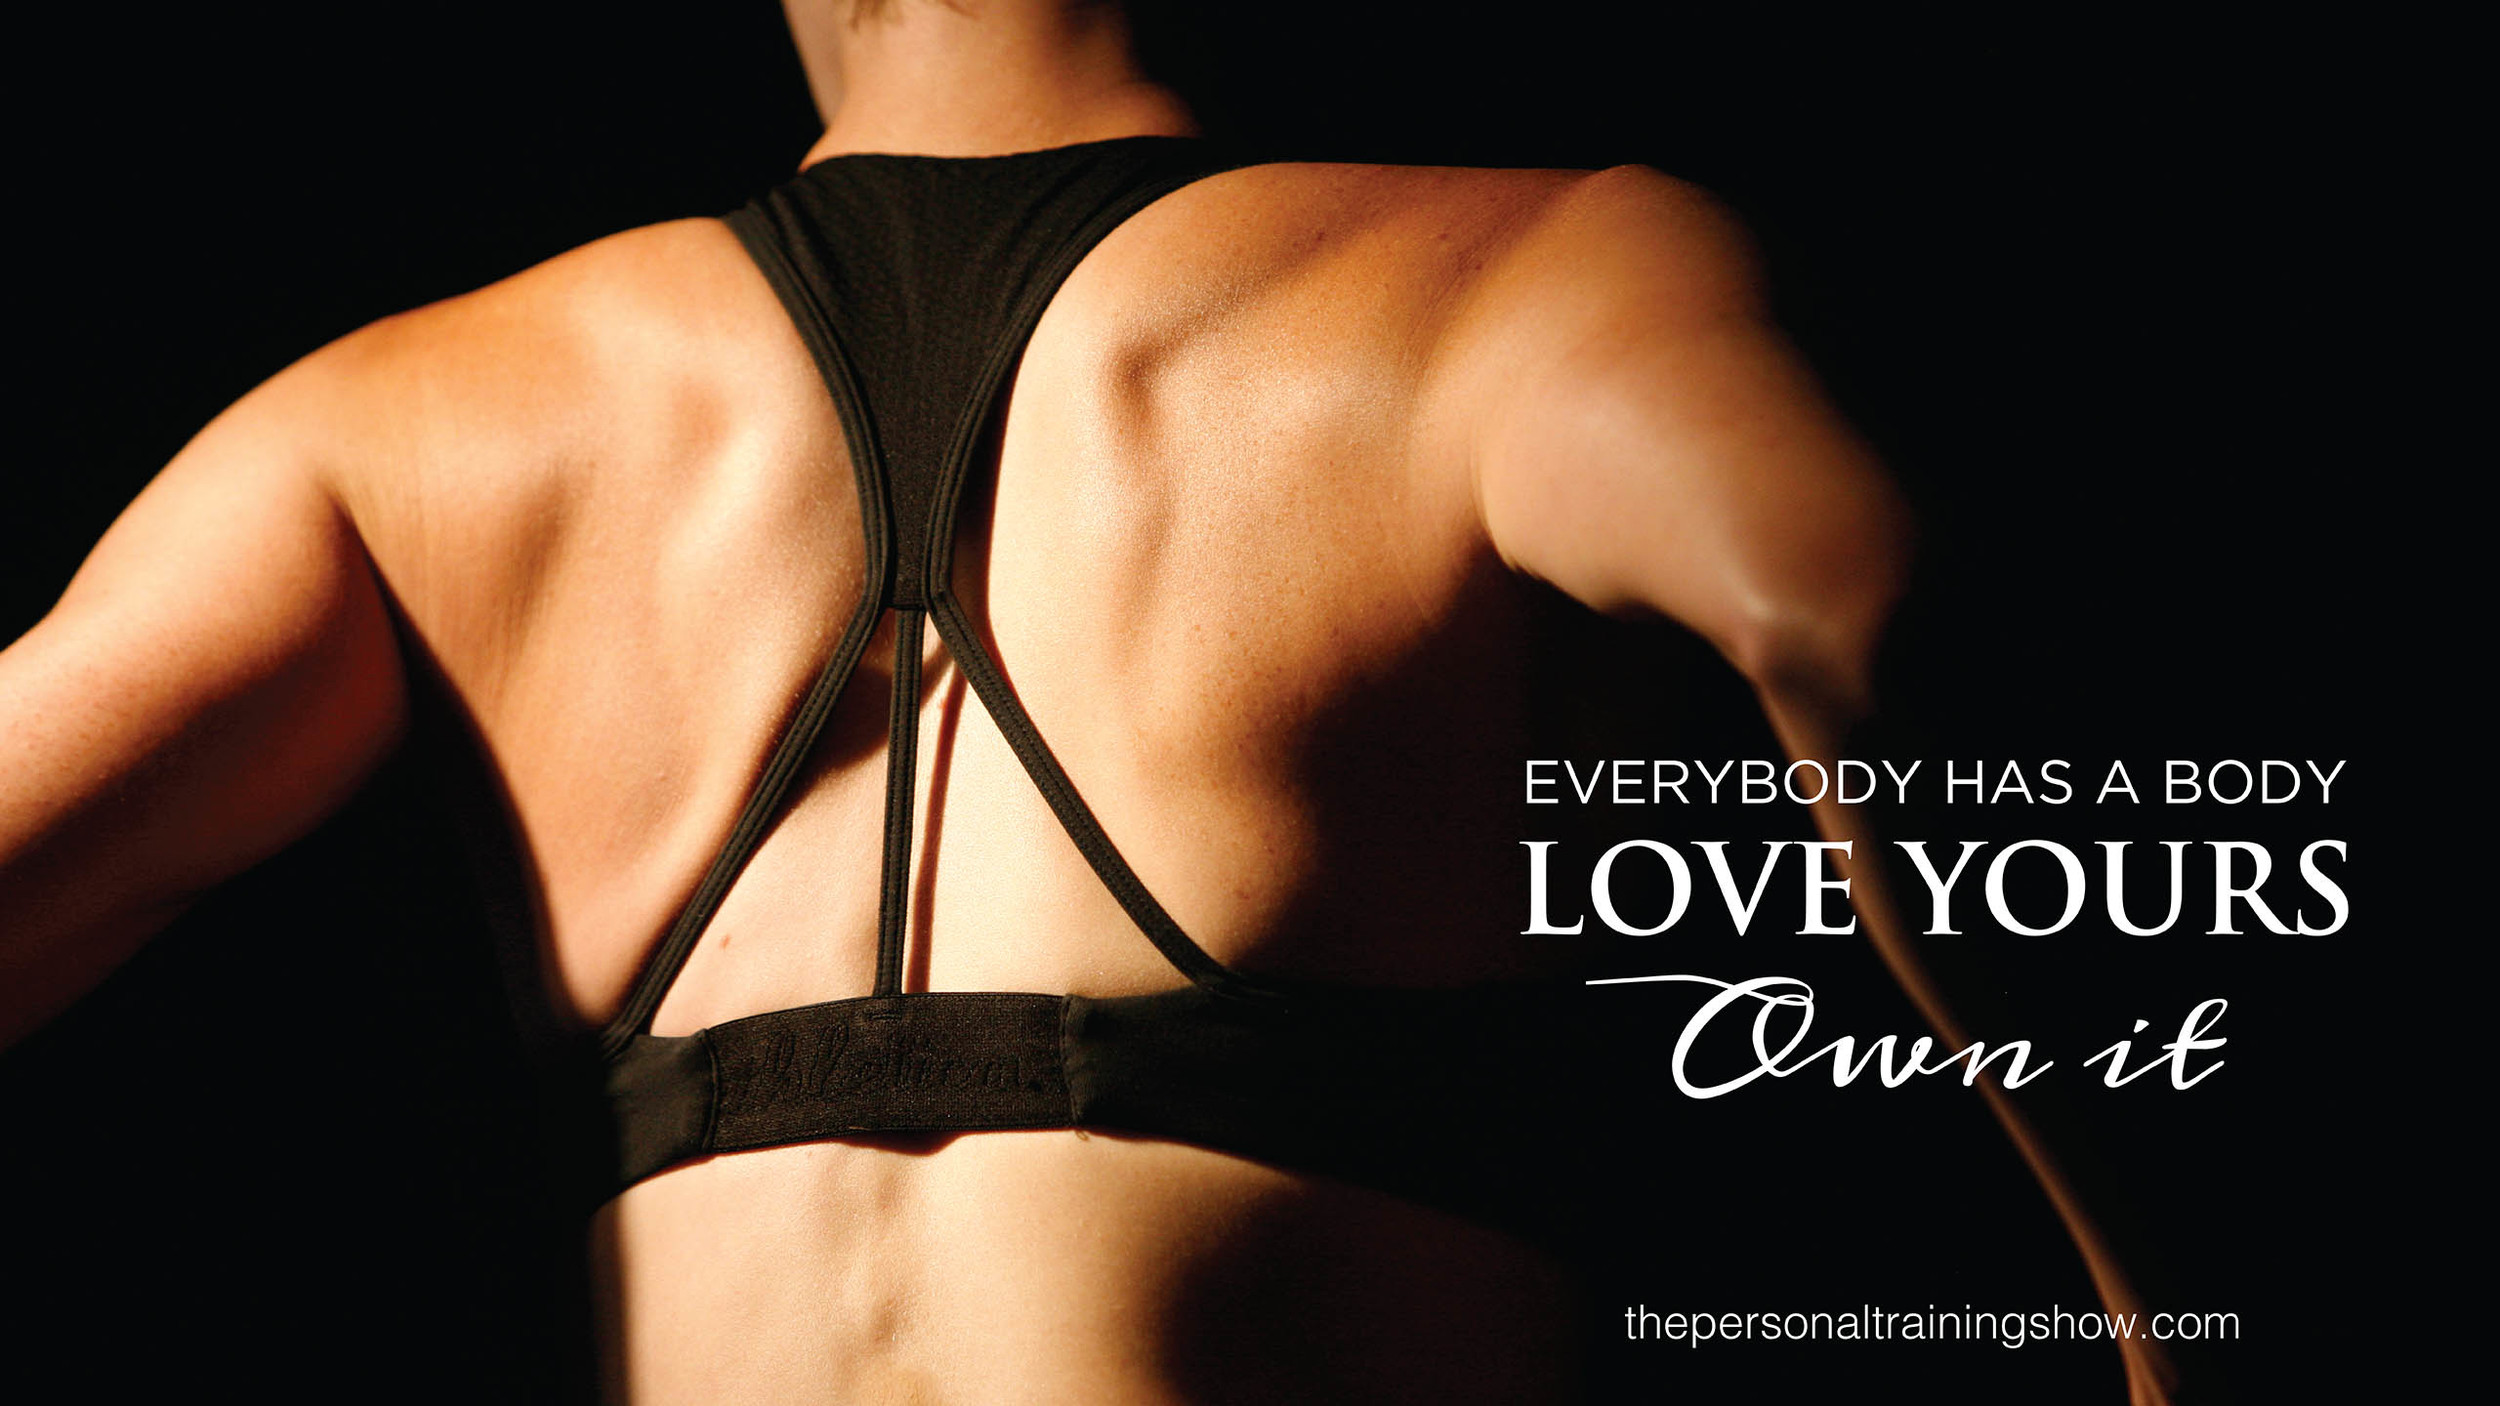 Everybody has a body. Love yours. Own it.